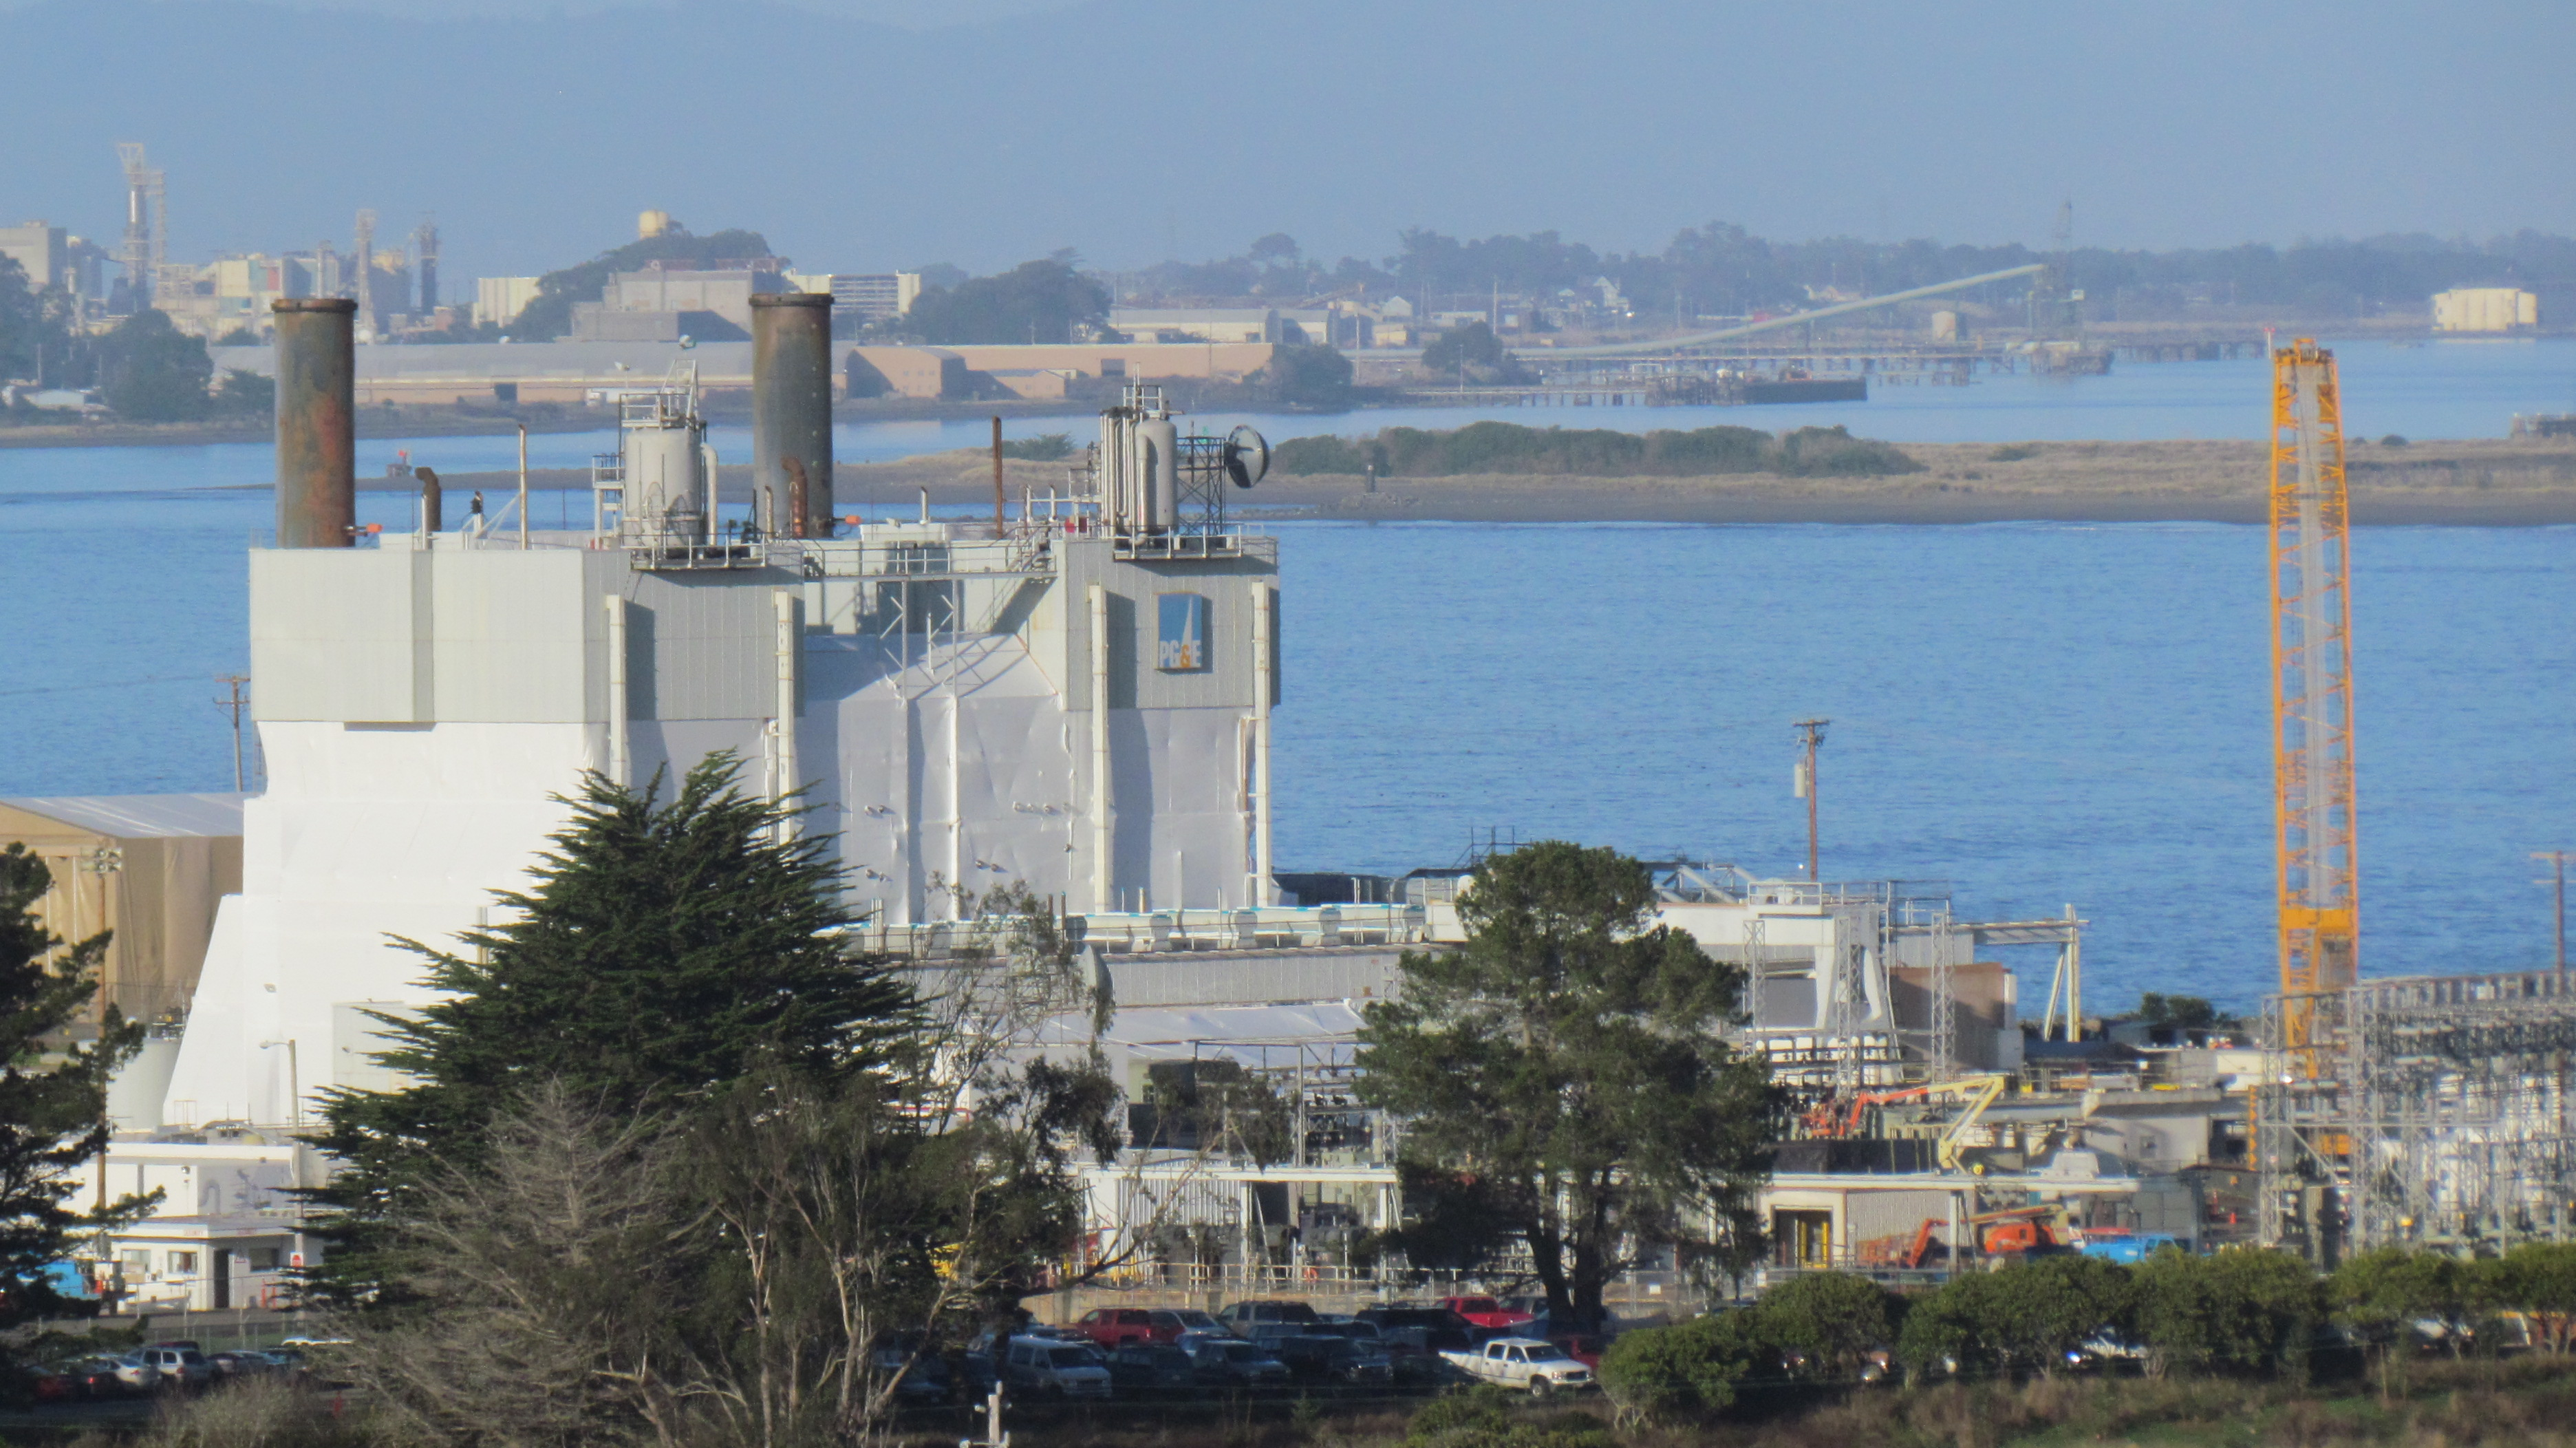 Bay Nuclear Power Plant